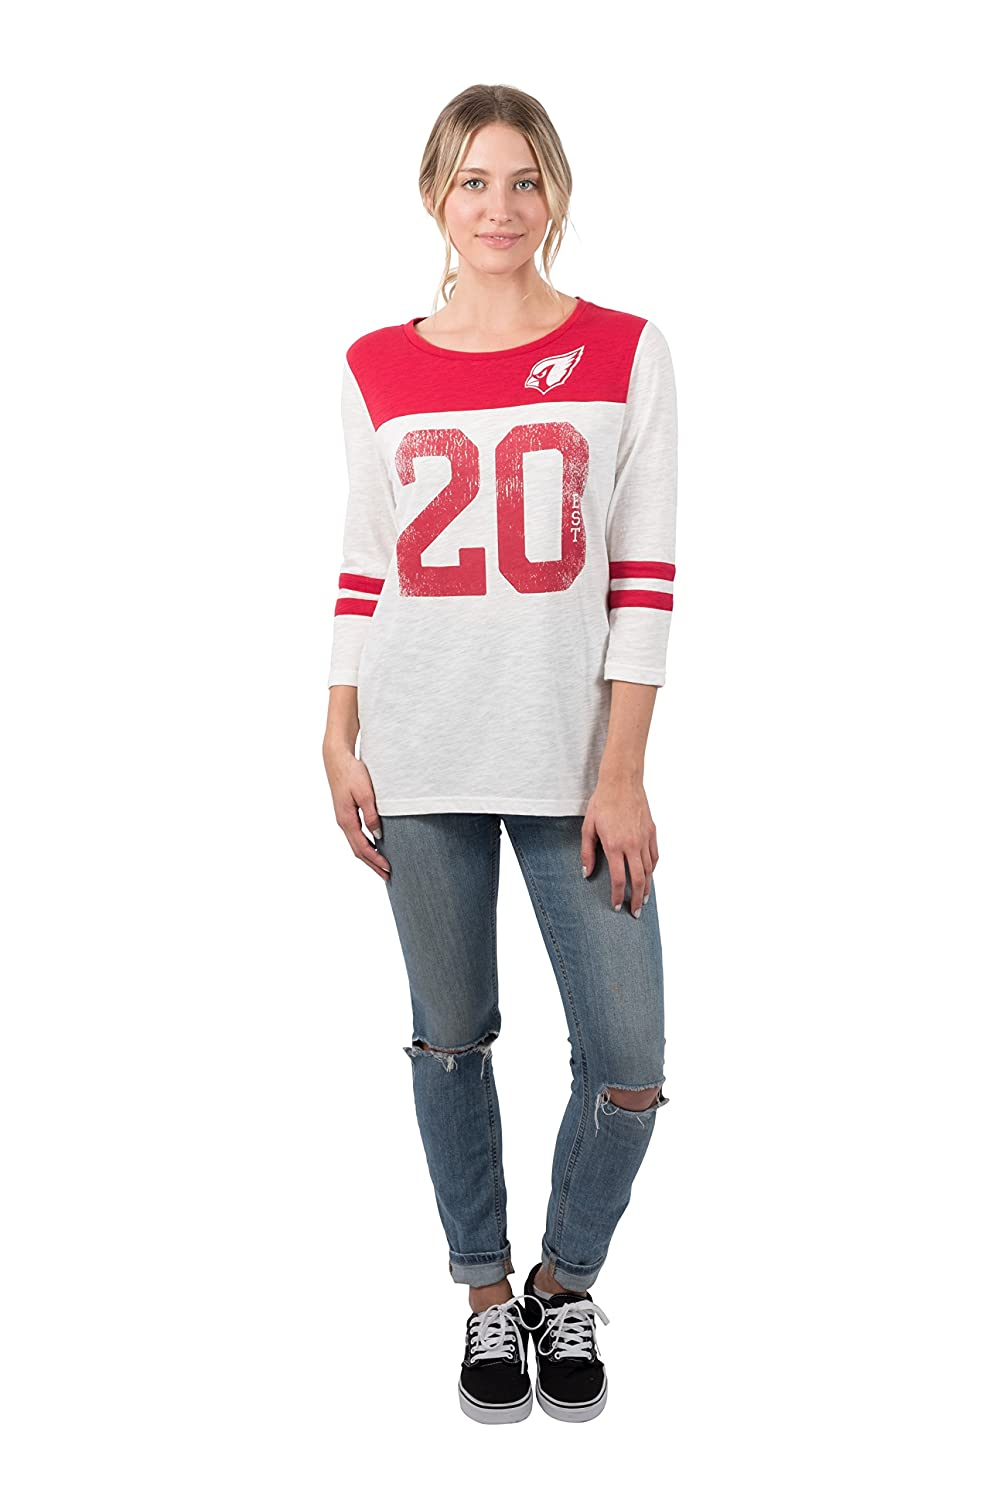 ad9ce024 Amazon.com : ICER Brands NFL Women's T-Shirt Vintage 3/4 Long Sleeve Tee  Shirt, White : Clothing